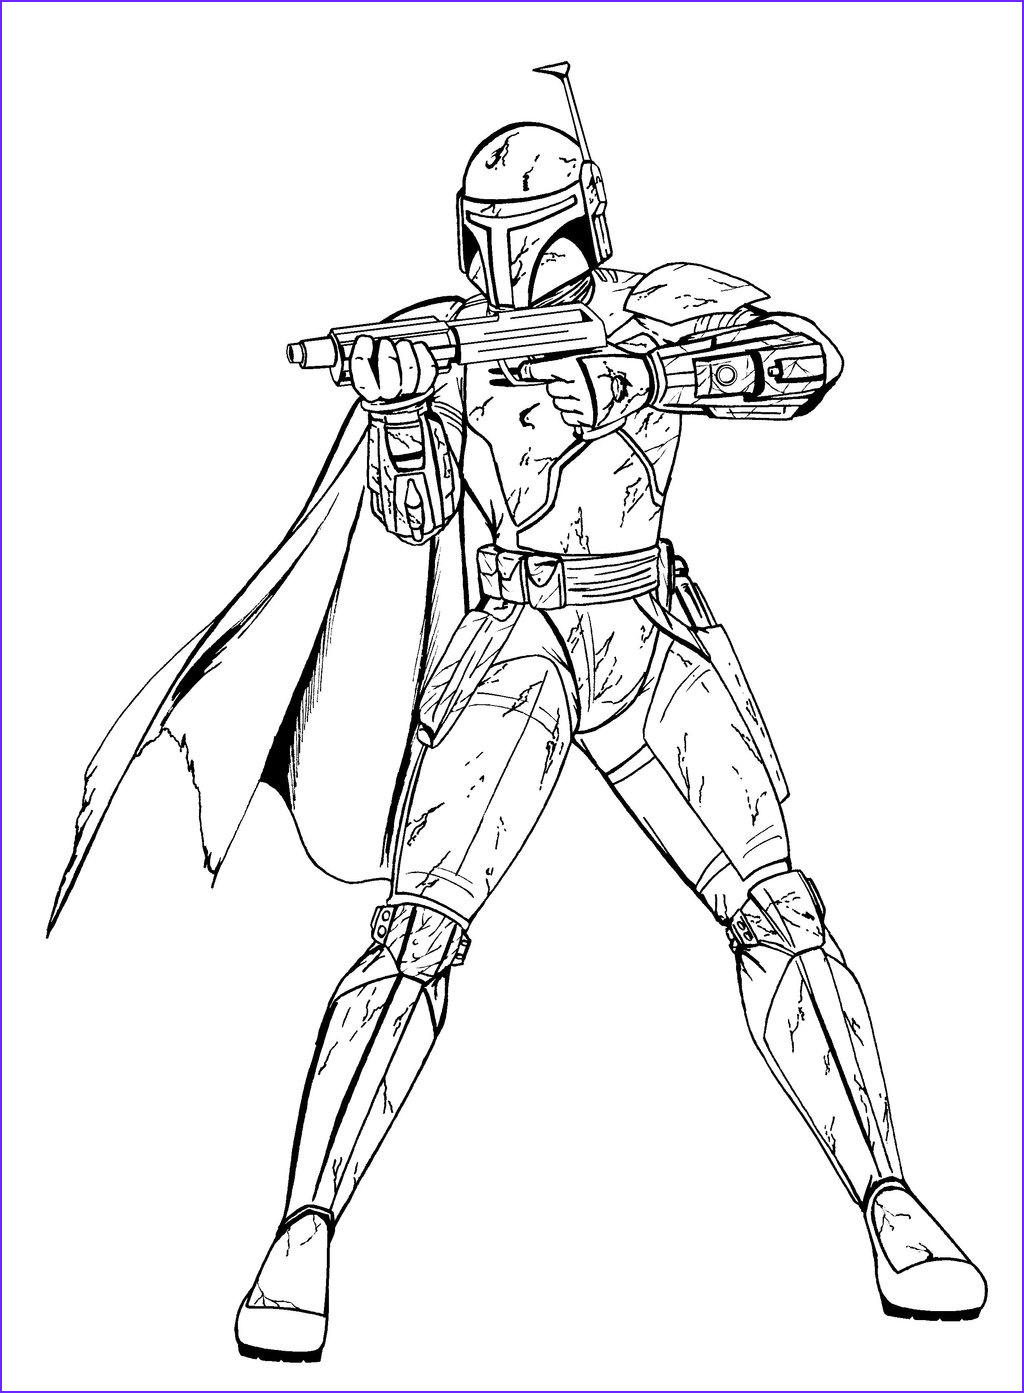 Star Wars Coloring New Collection Star Wars Coloring Pages 2018 Dr Odd